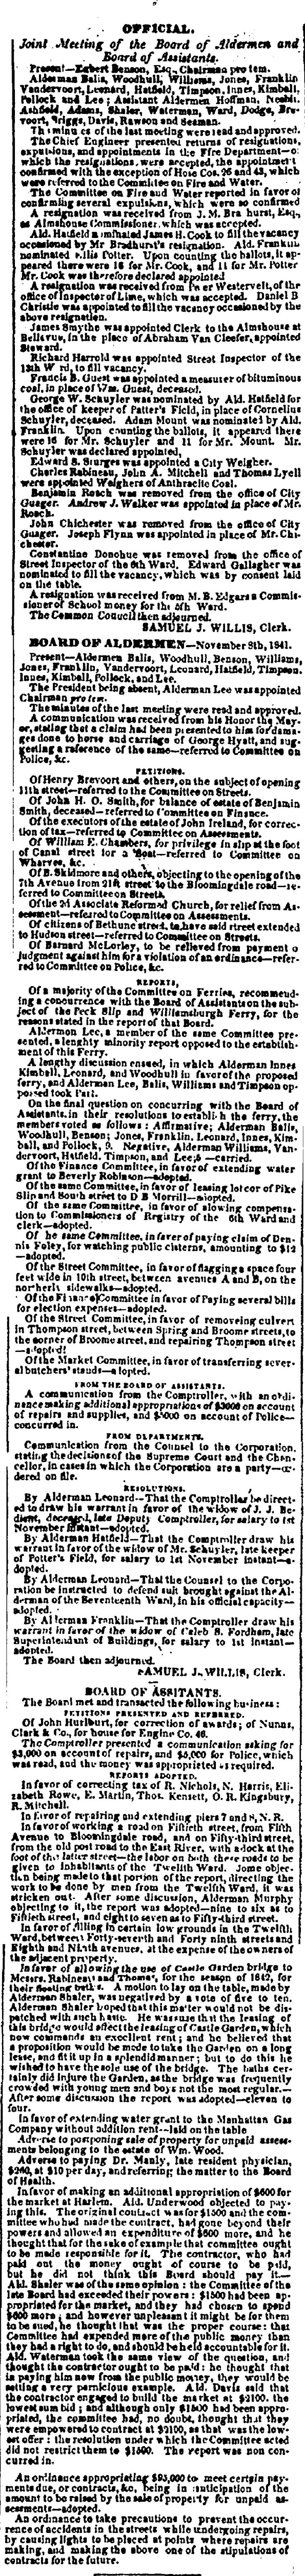 """1841.11.9.  John Chichester (& Ben. Roach) removed from the office of City Guager."""""""